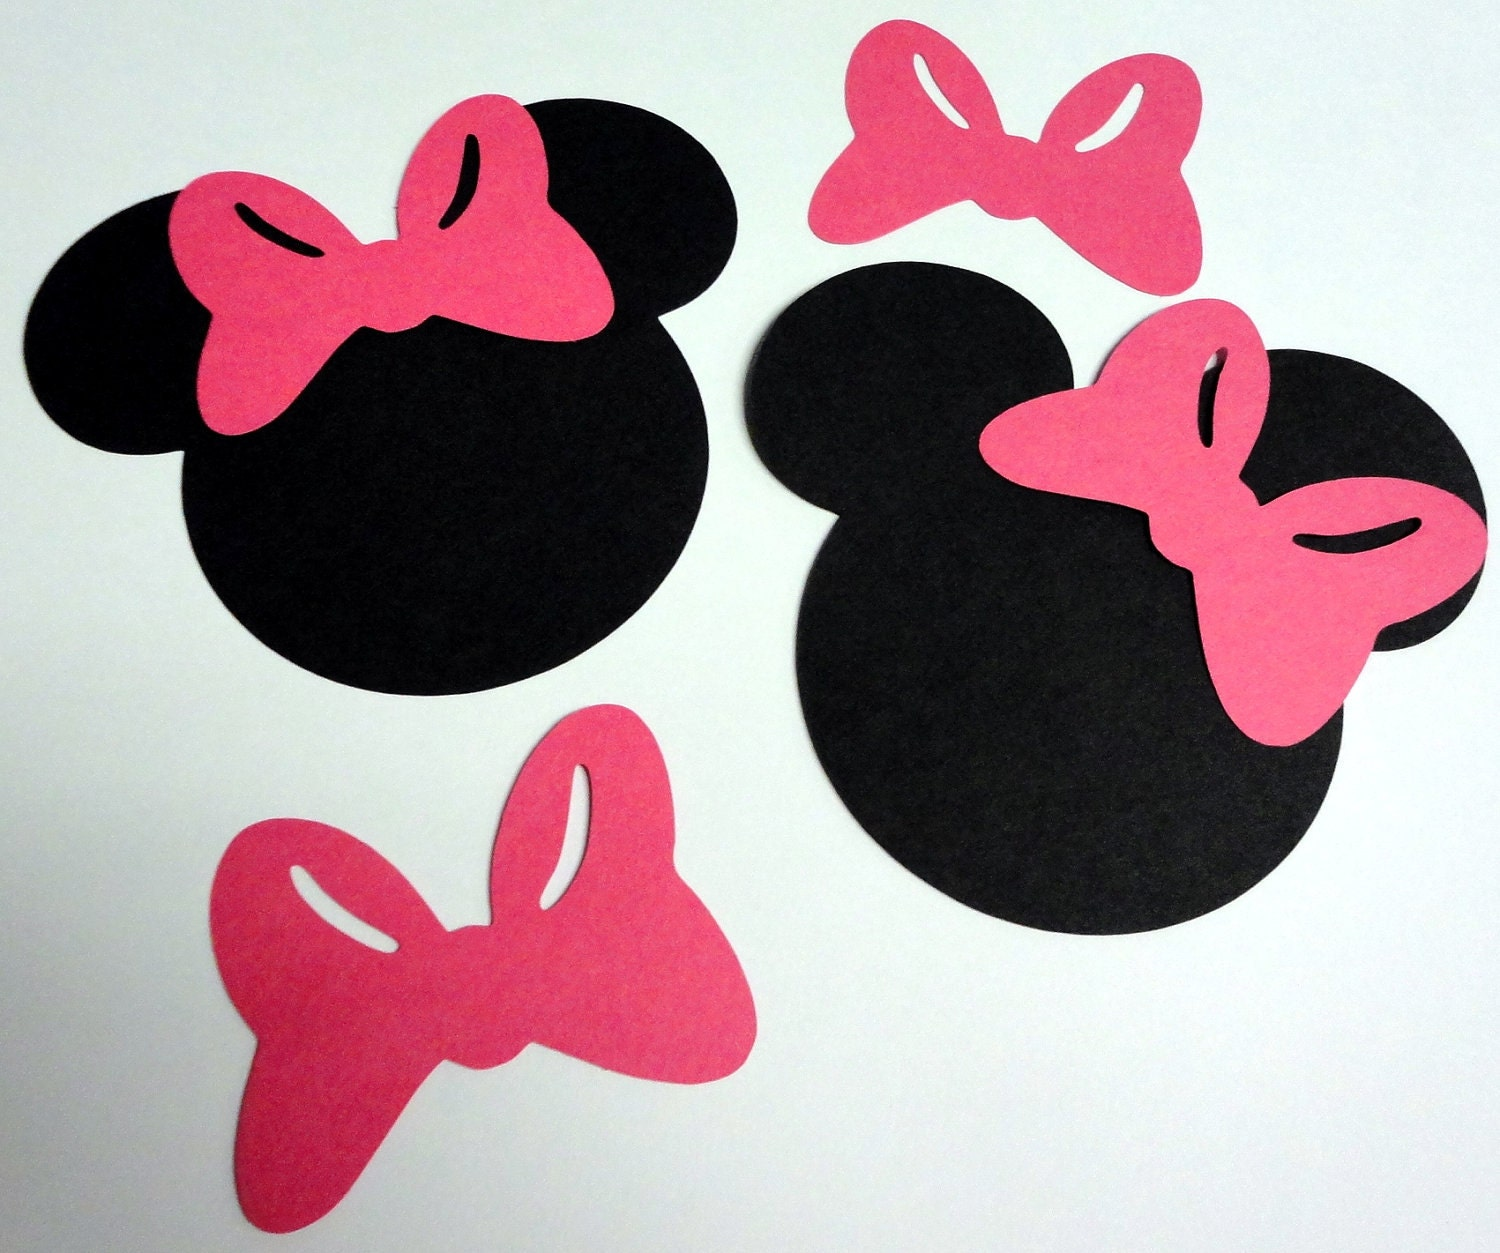 50 5 Minnie Mouse Head Silhouettes Black by StartedByAMouse1928